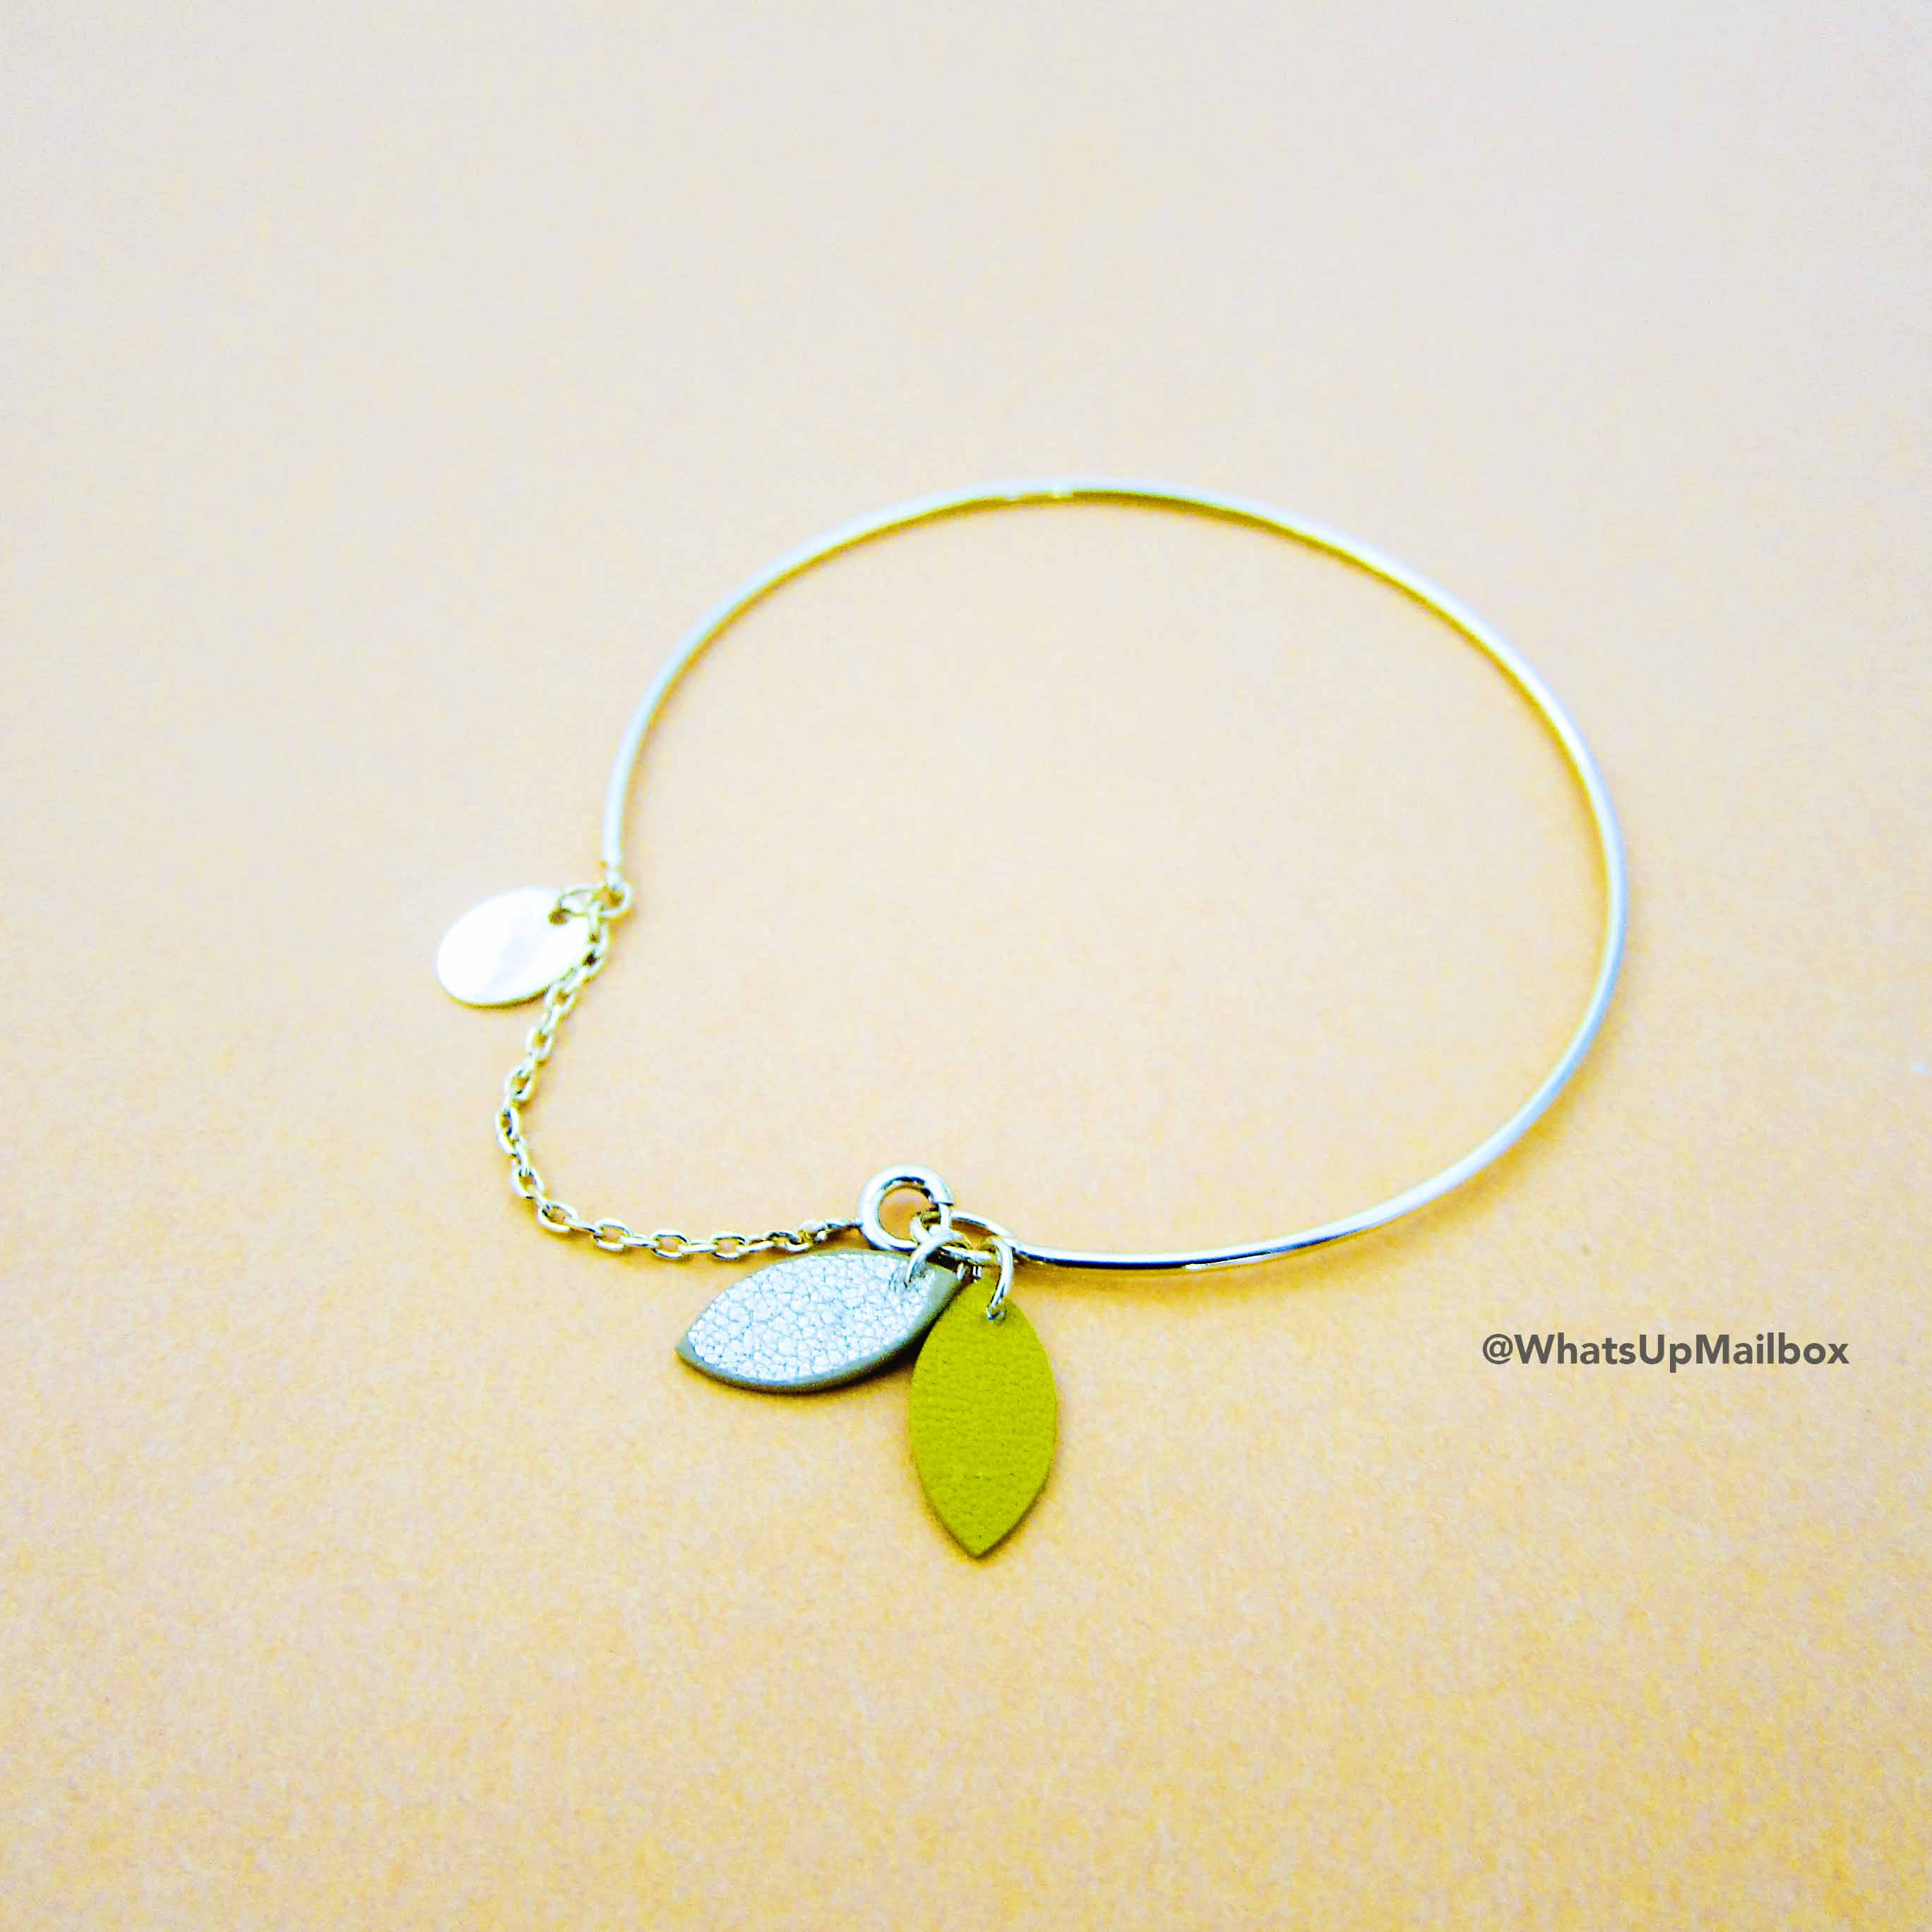 Emma & Chloe September 2016 Item - May & June Tumen Bracelet in Gold